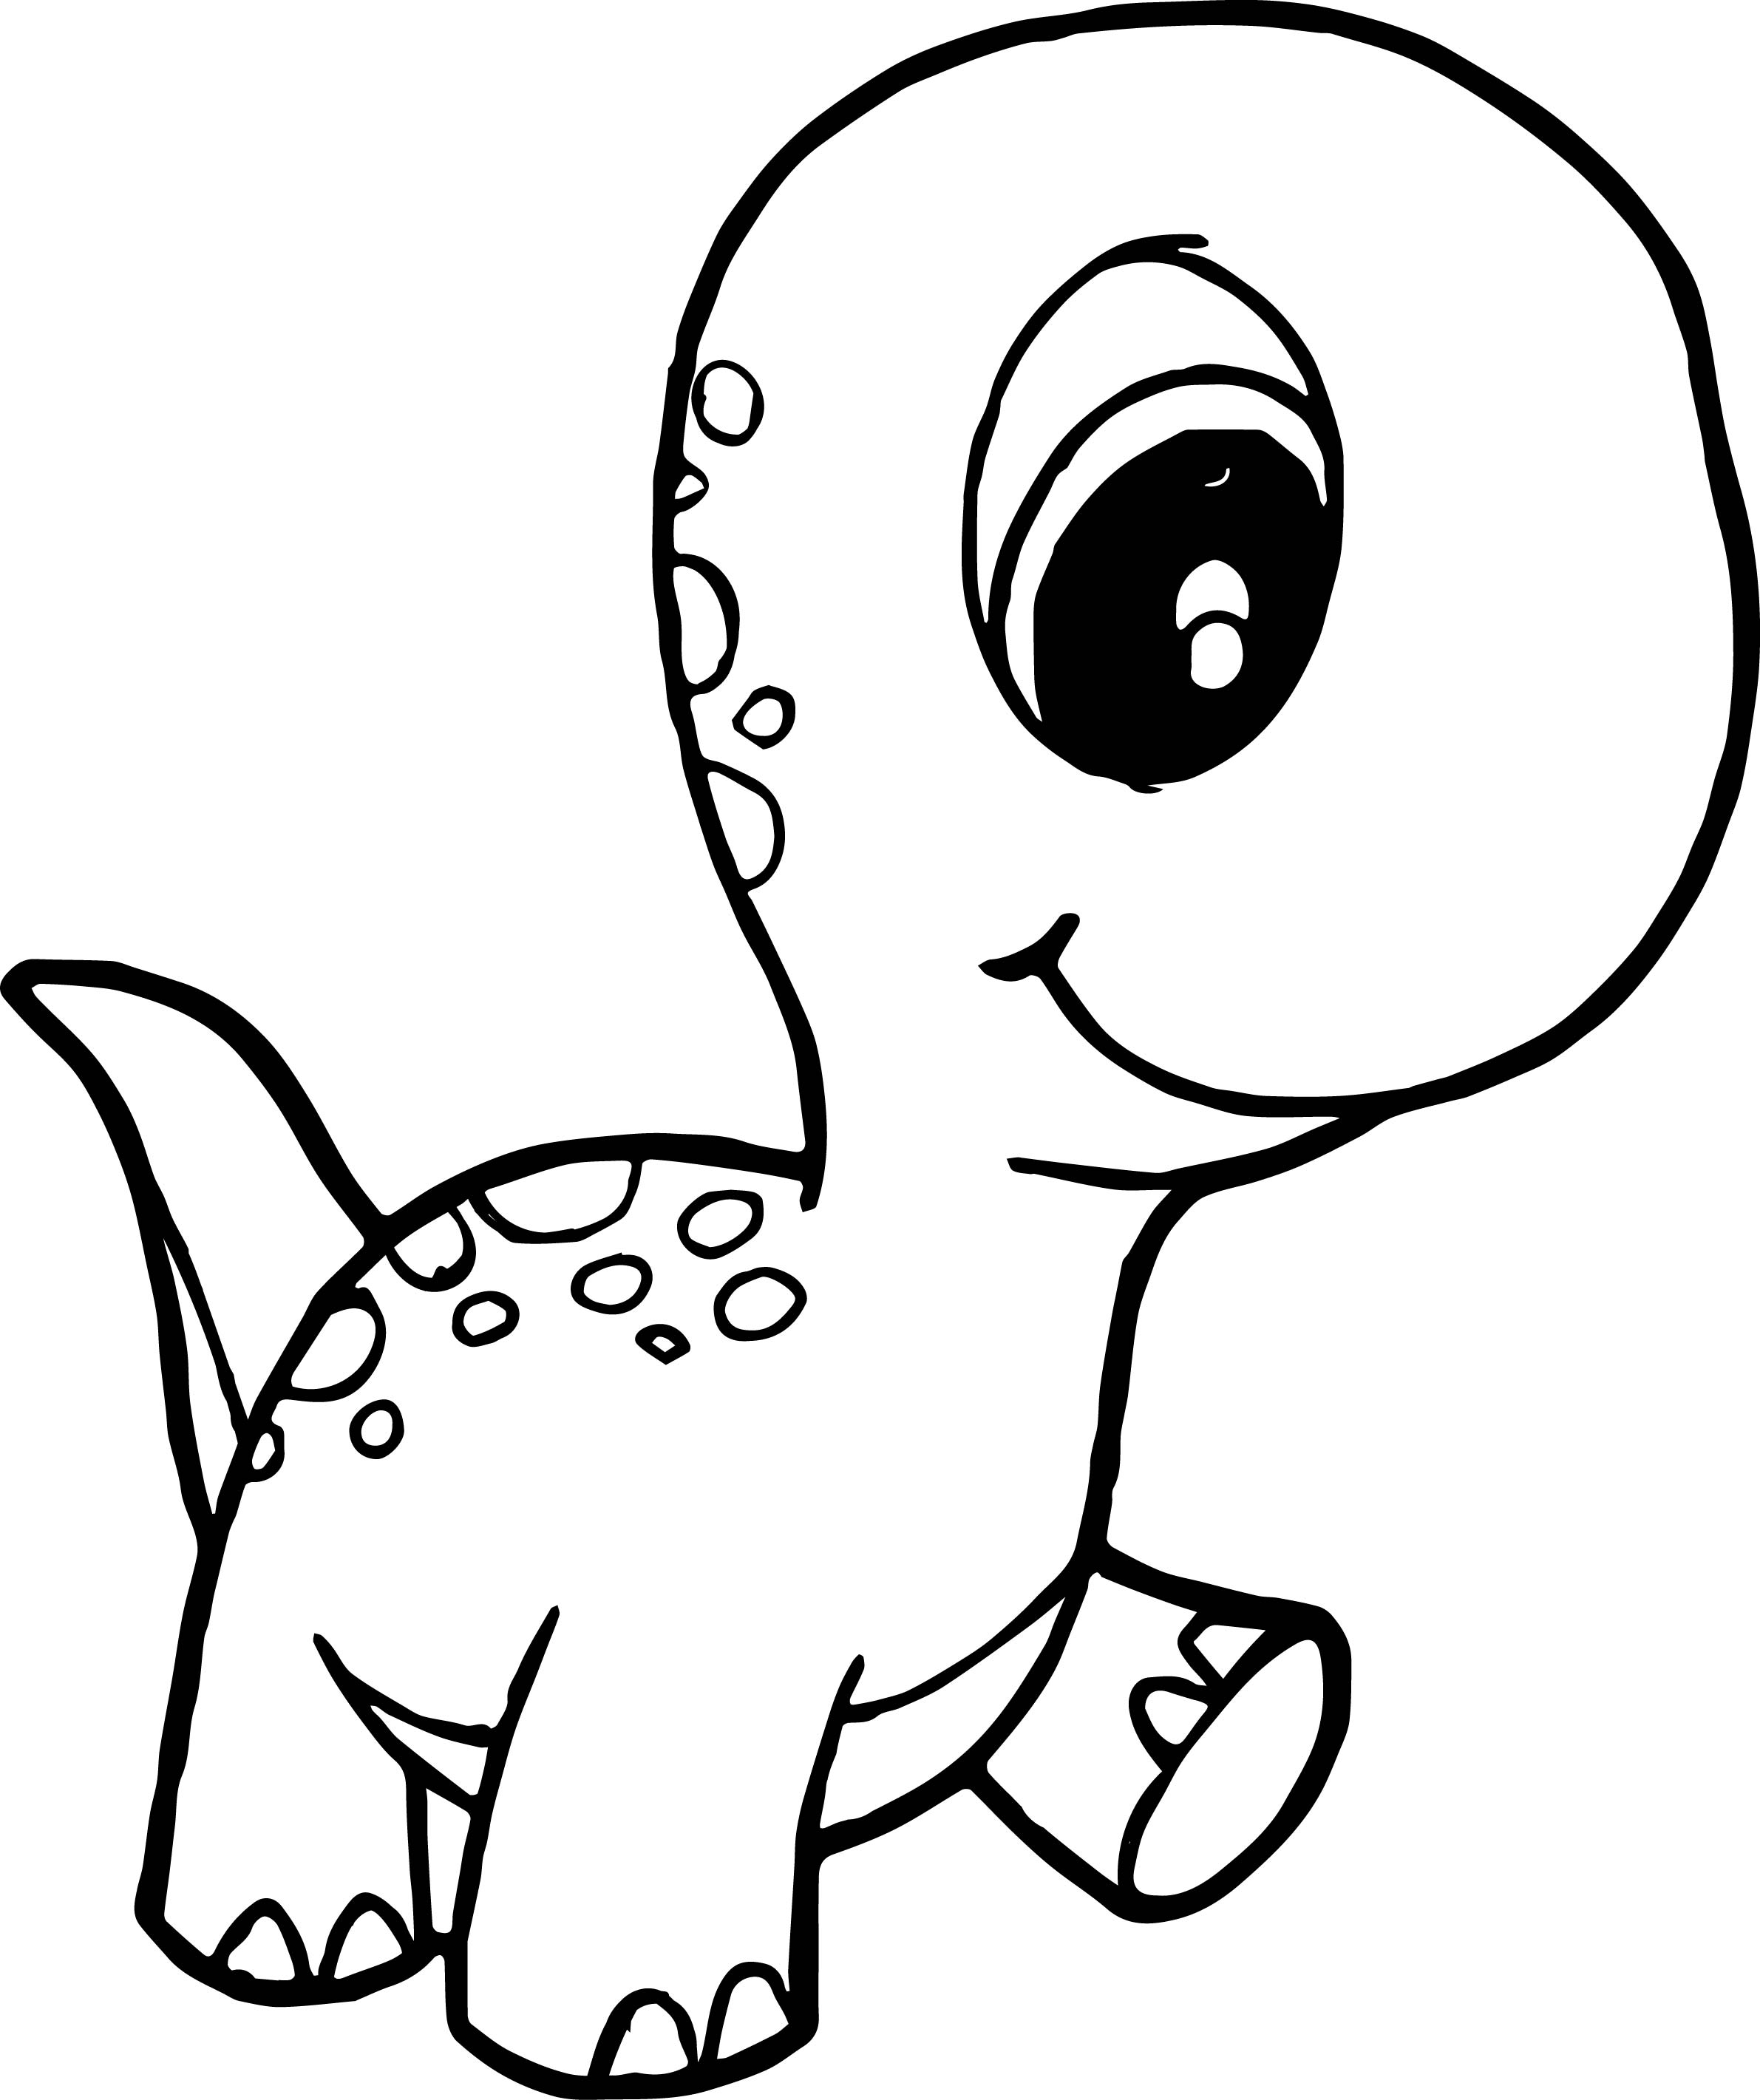 2381x2841 Dinosaur Cute Baby Walking Coloring Page Wecoloringpage